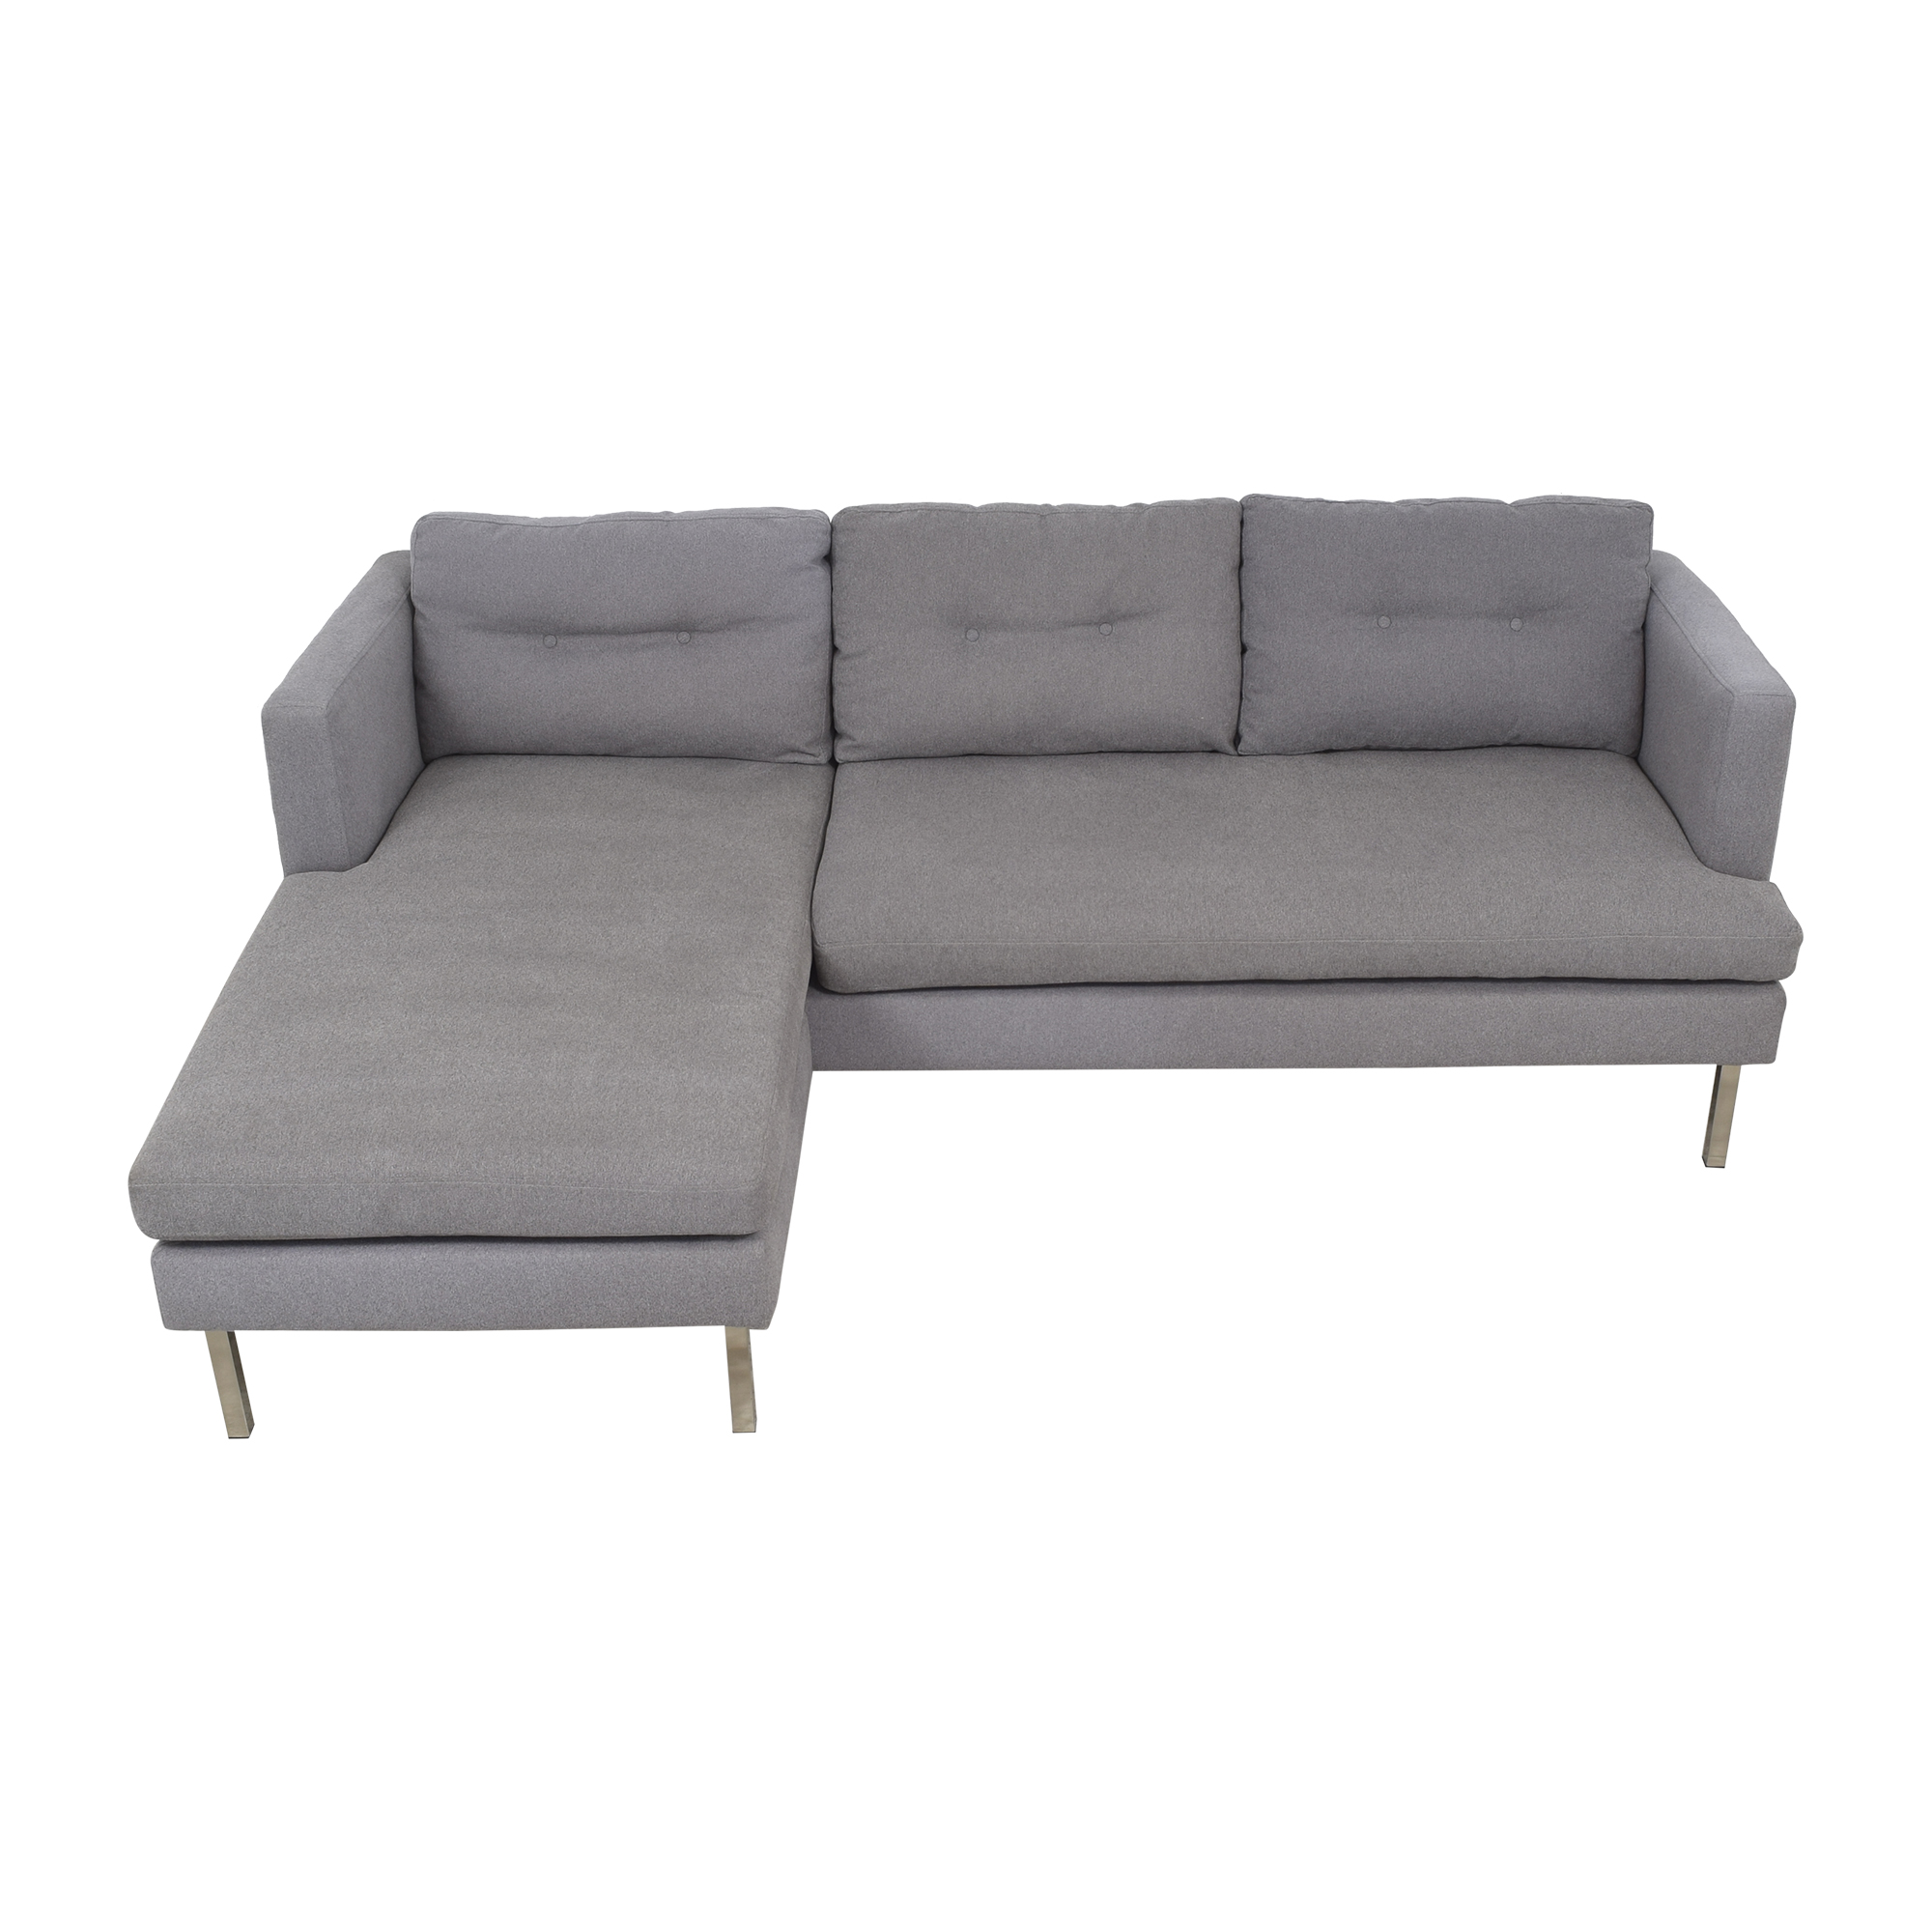 13 Off West Elm West Elm Modern Sectional Sofa With Chaise Sofas